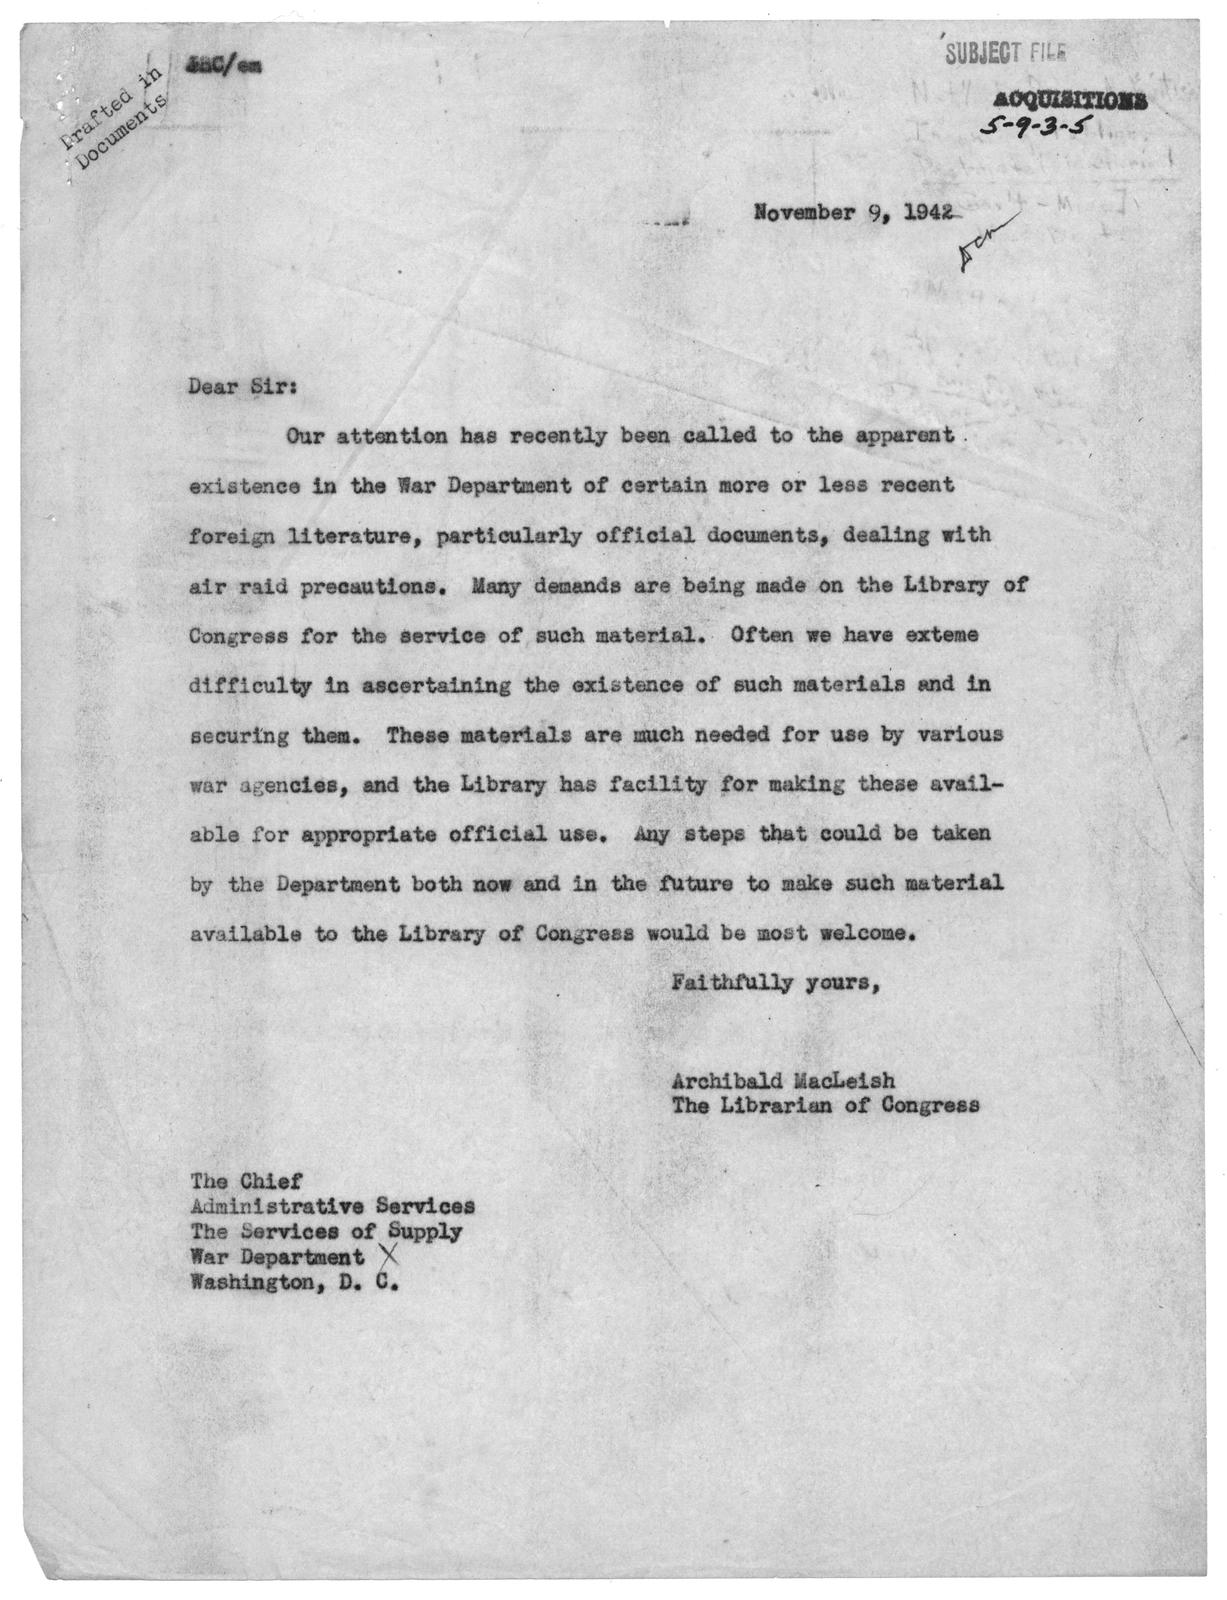 Letter from Archibald MacLeish, November 9, 1942